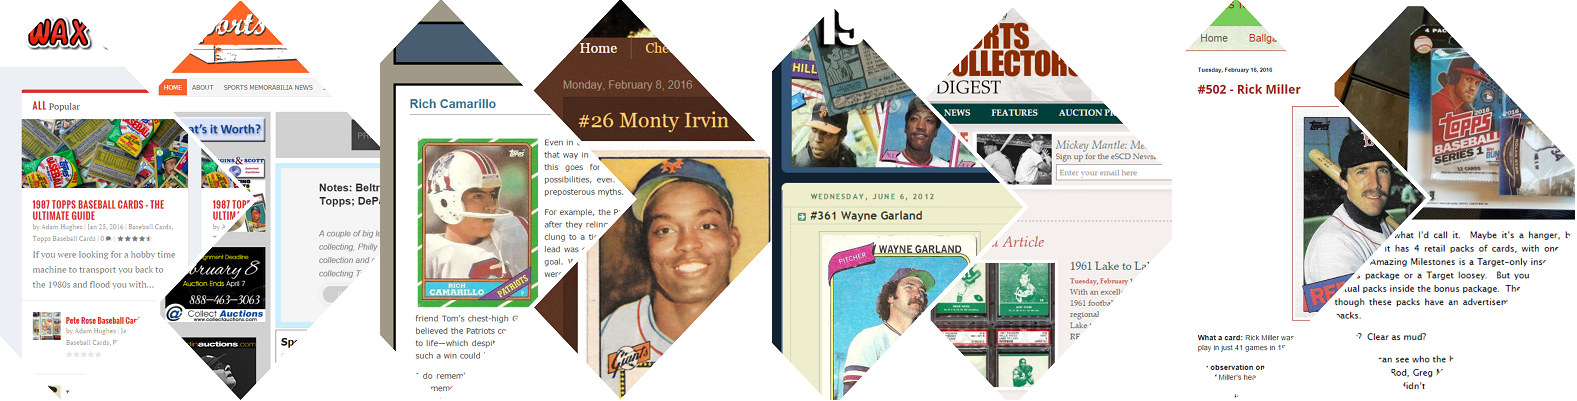 Baseball Card Websites The Ultimate Guide To 450 Of The